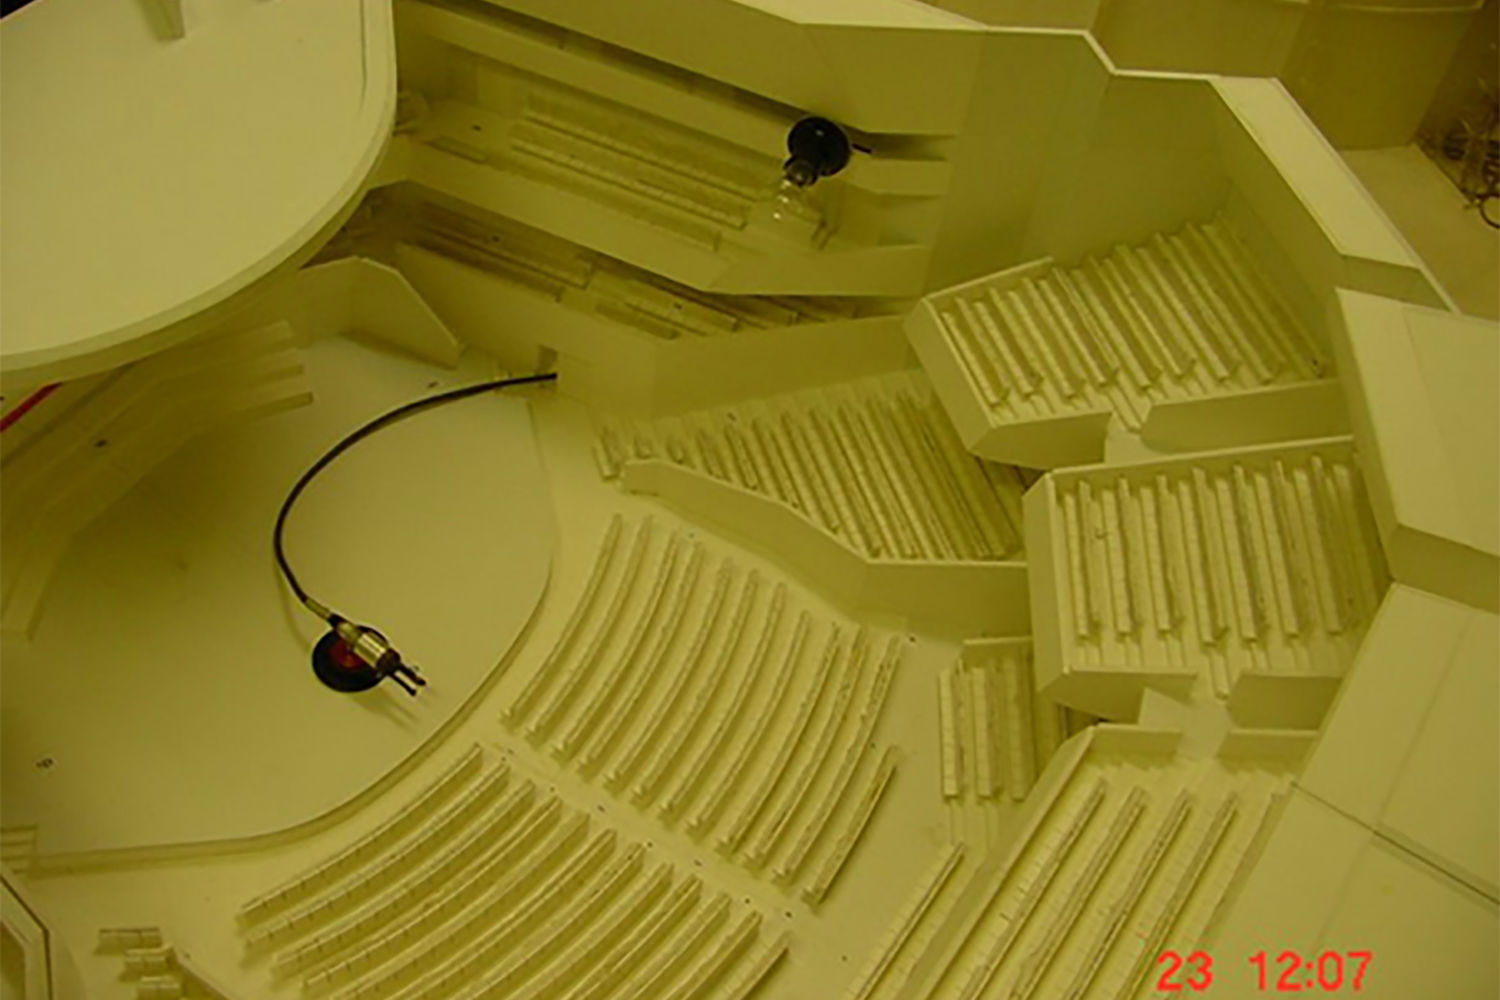 Moscow International House of Music in Moscow, Russia. ADA-AMC, a WSDG Company, was called for consulting and simulations on the room acoustics. Architecture and simulations.